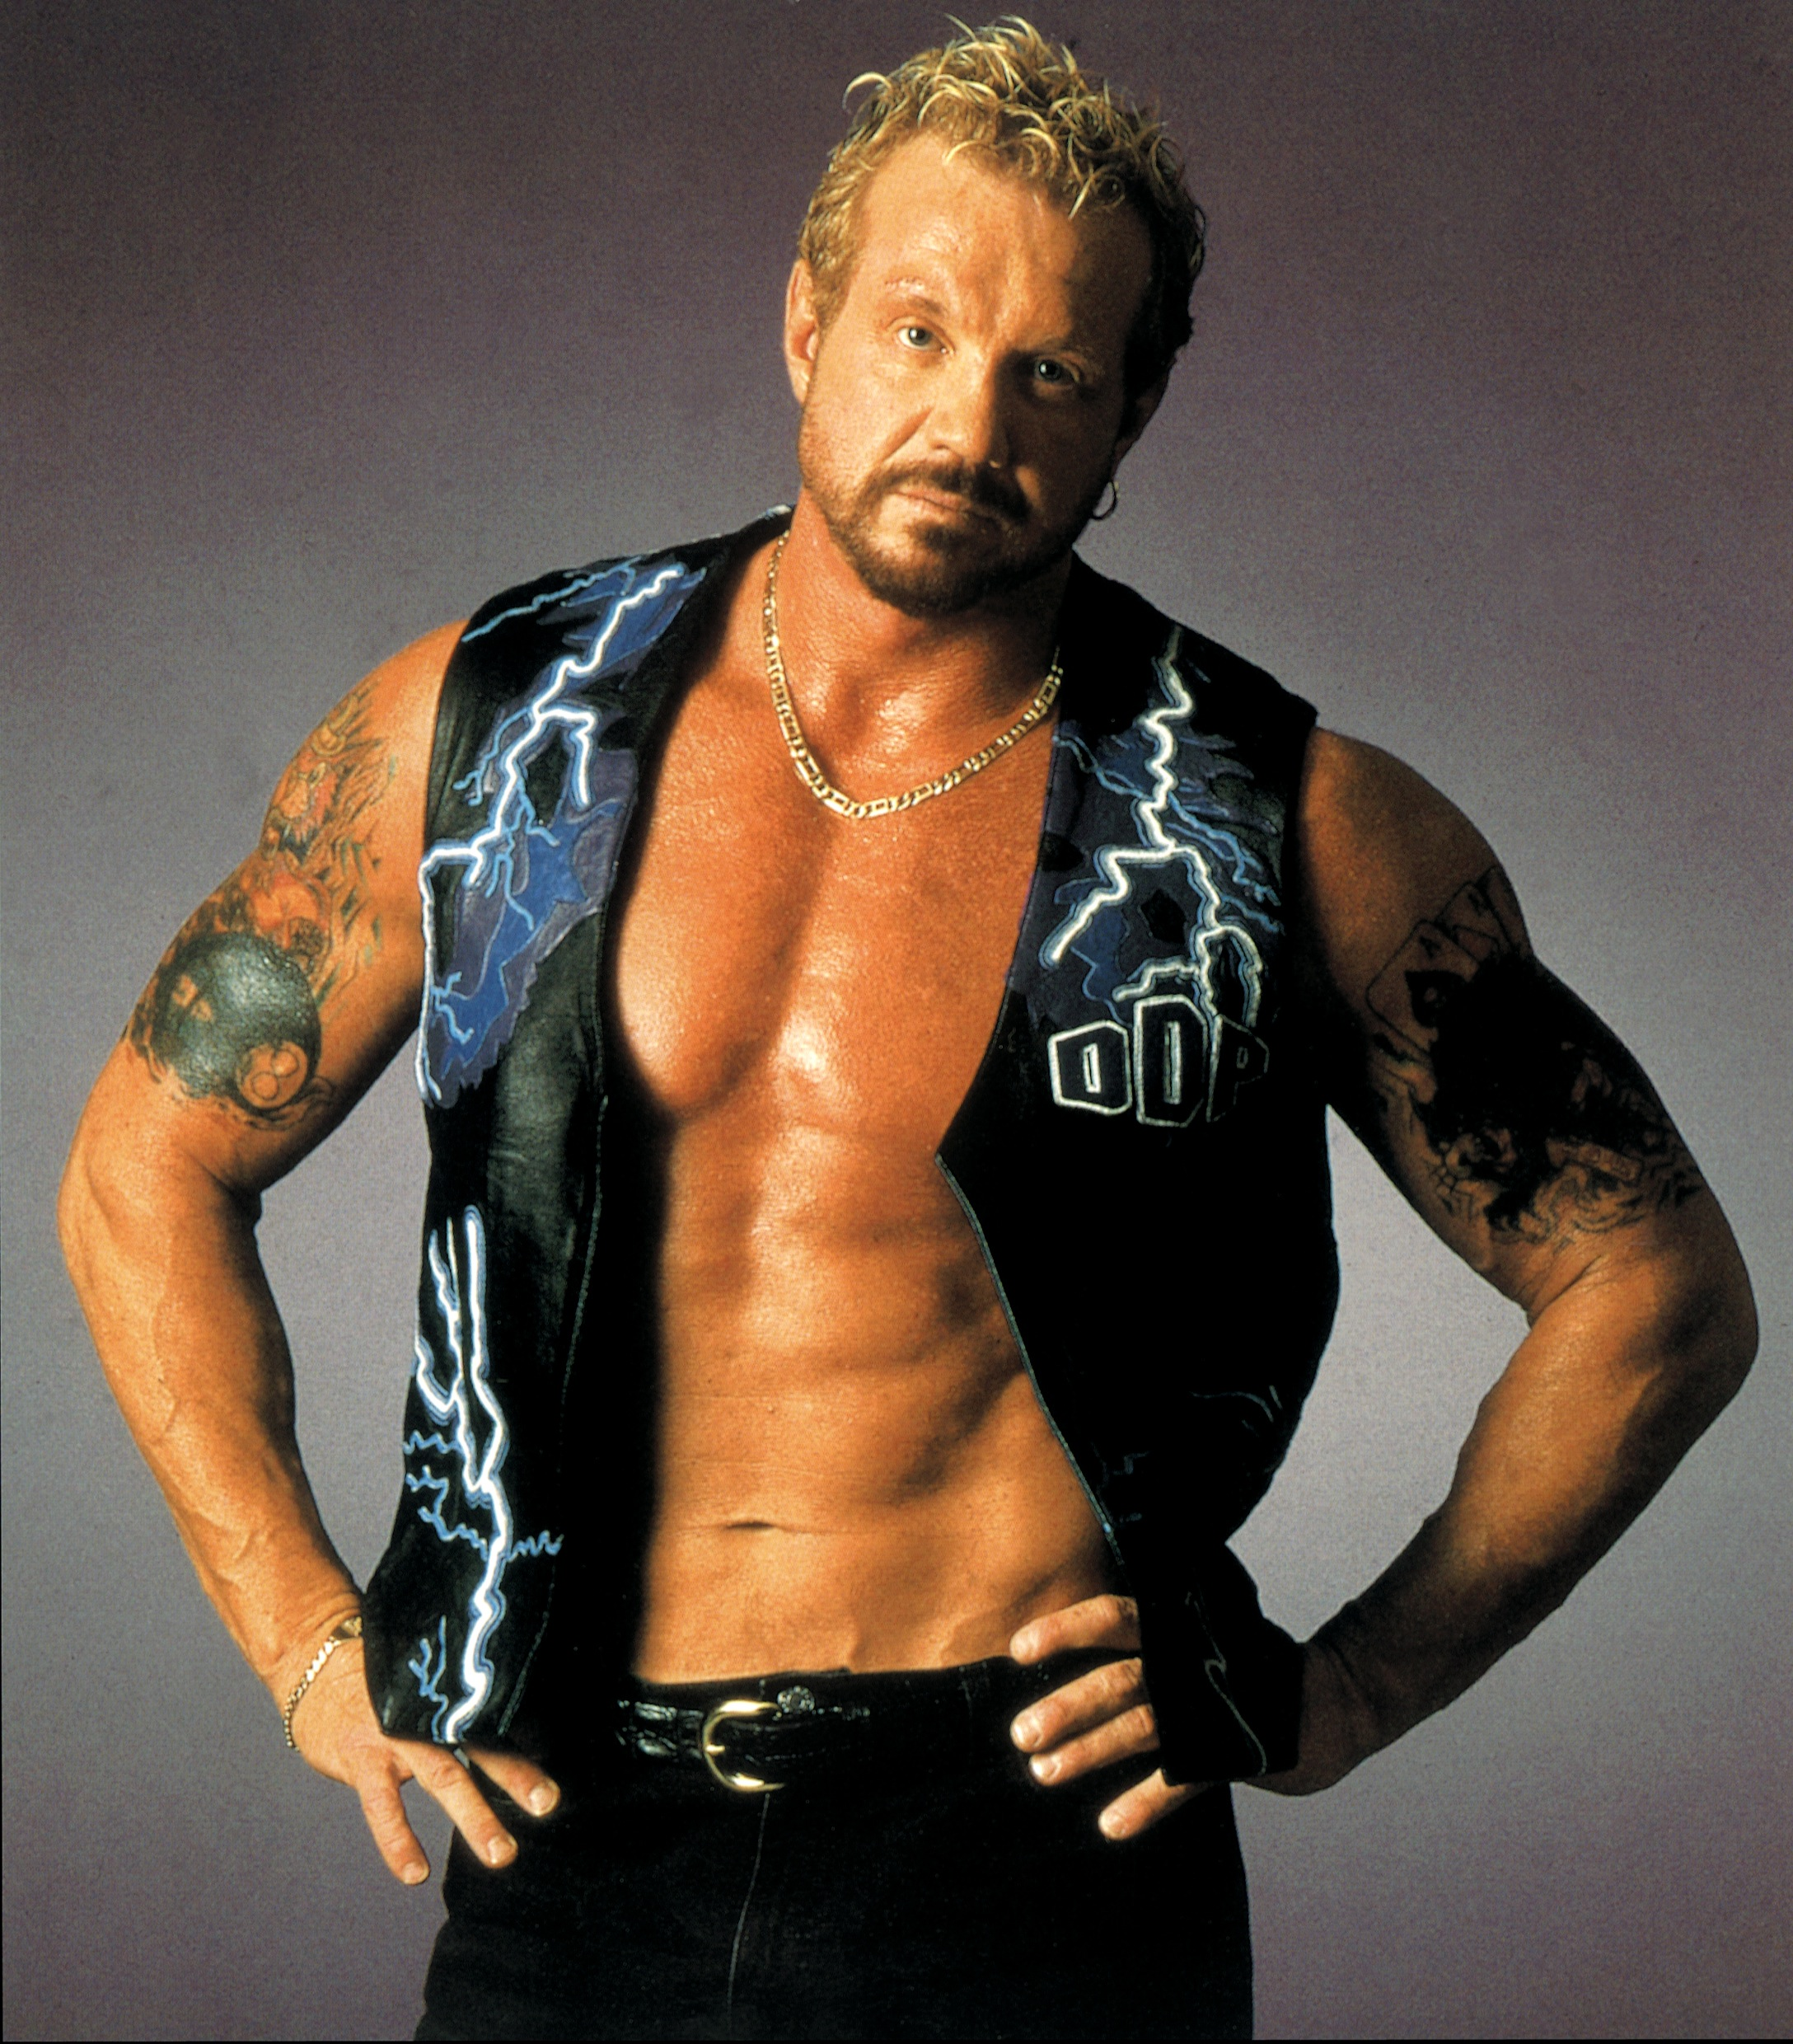 Wwe Hall Of Famer Diamond Dallas Page Nobody Had Ever Done It The Way Ddp Did It For The Win